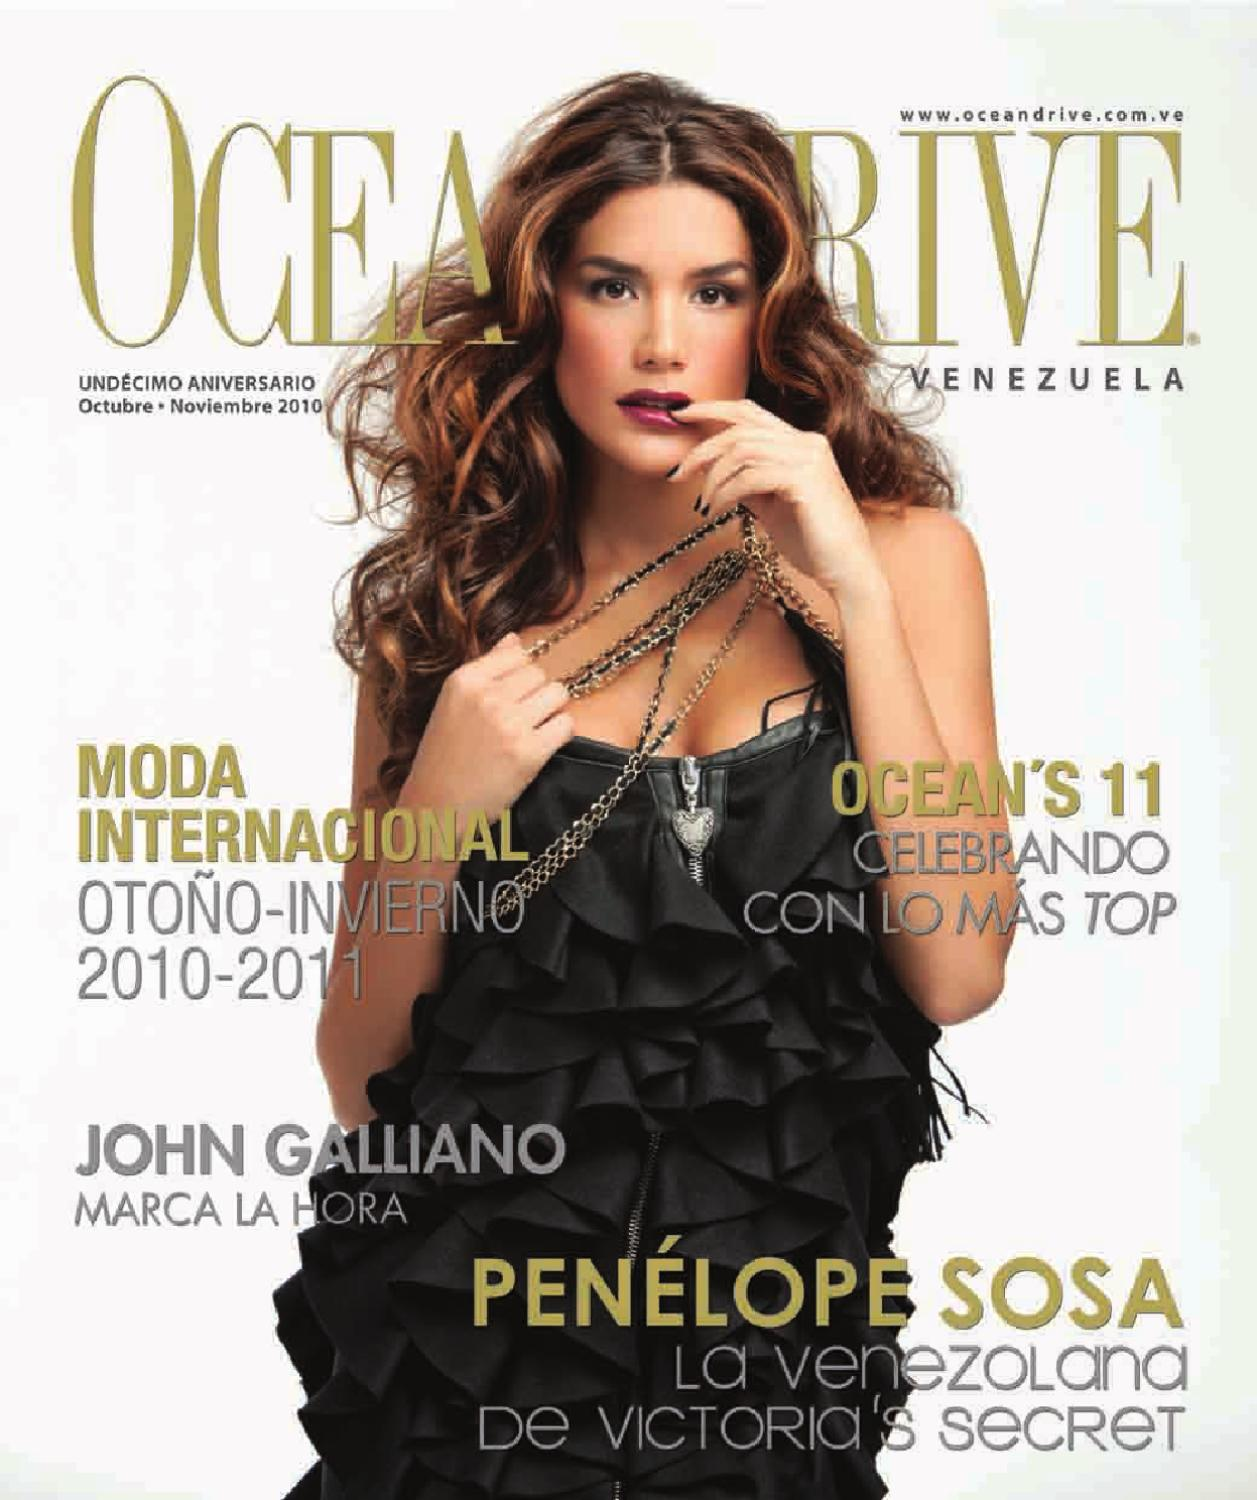 ODV Aniversario 2010 by Grupo Editorial Shop In 98 C.A. - issuu ee2f7e2d1de